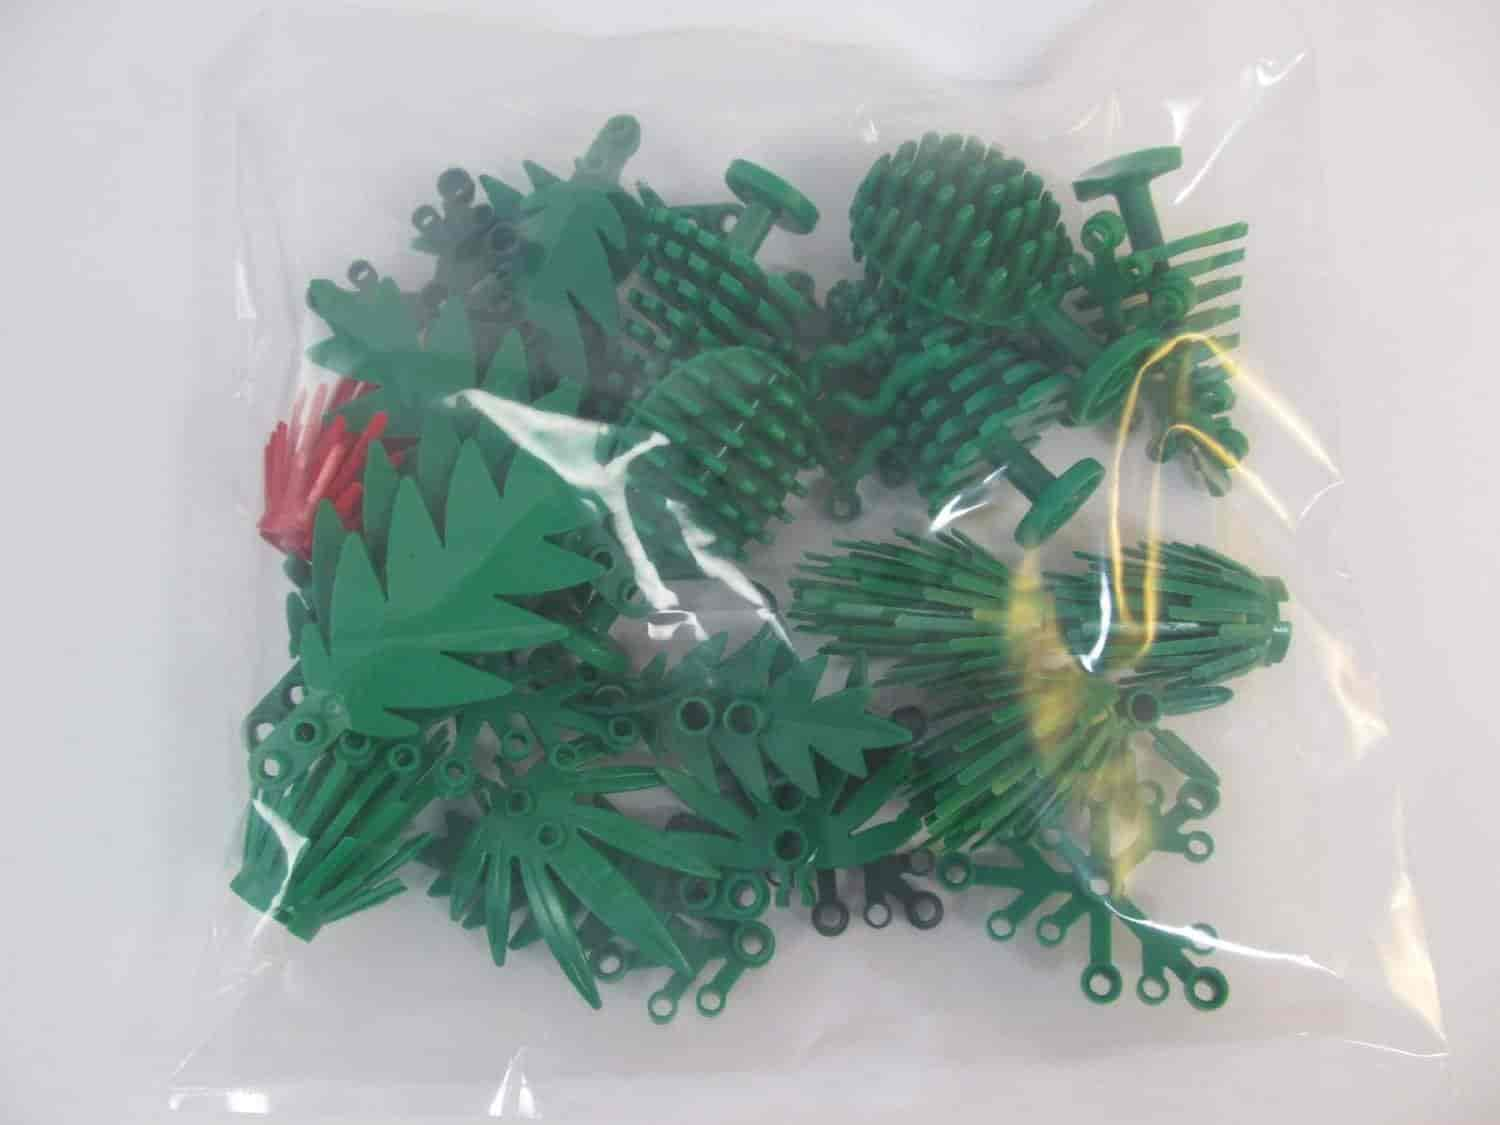 Fish aquarium just dial -  X25 Lego Greenery Plant Pieces